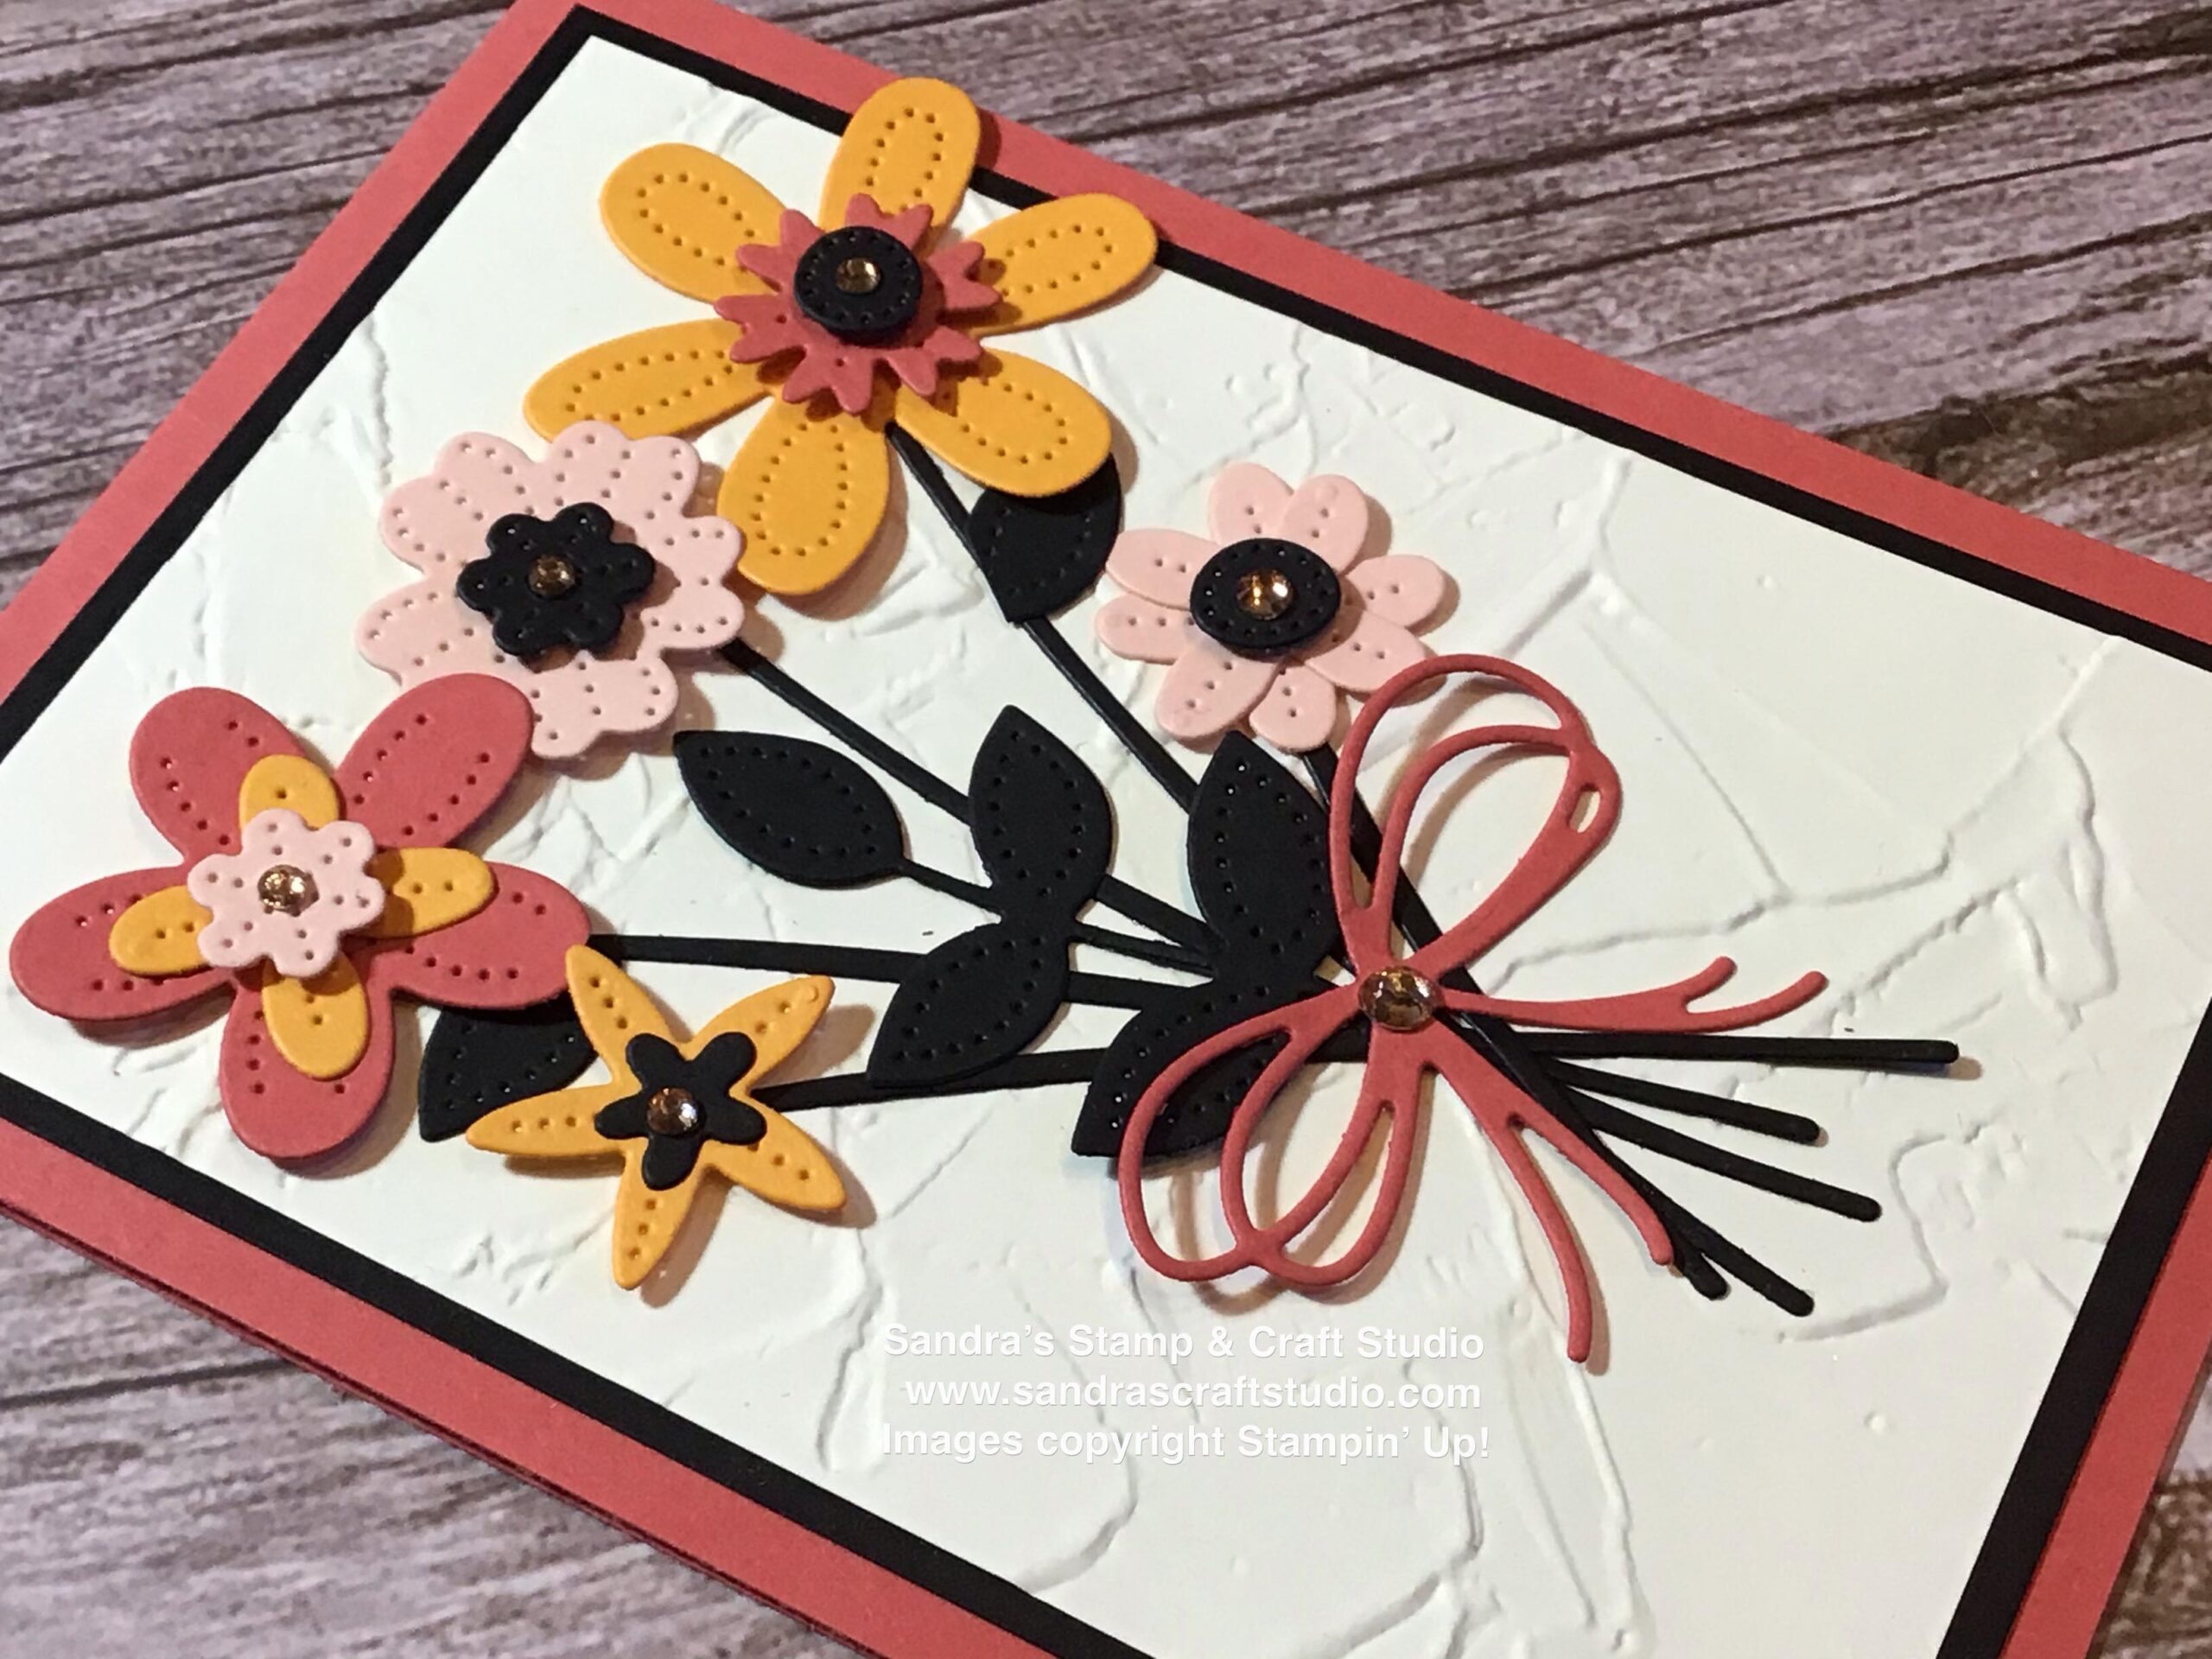 Handmade card created using 'In Blooms' Dies from Stampin' Up!